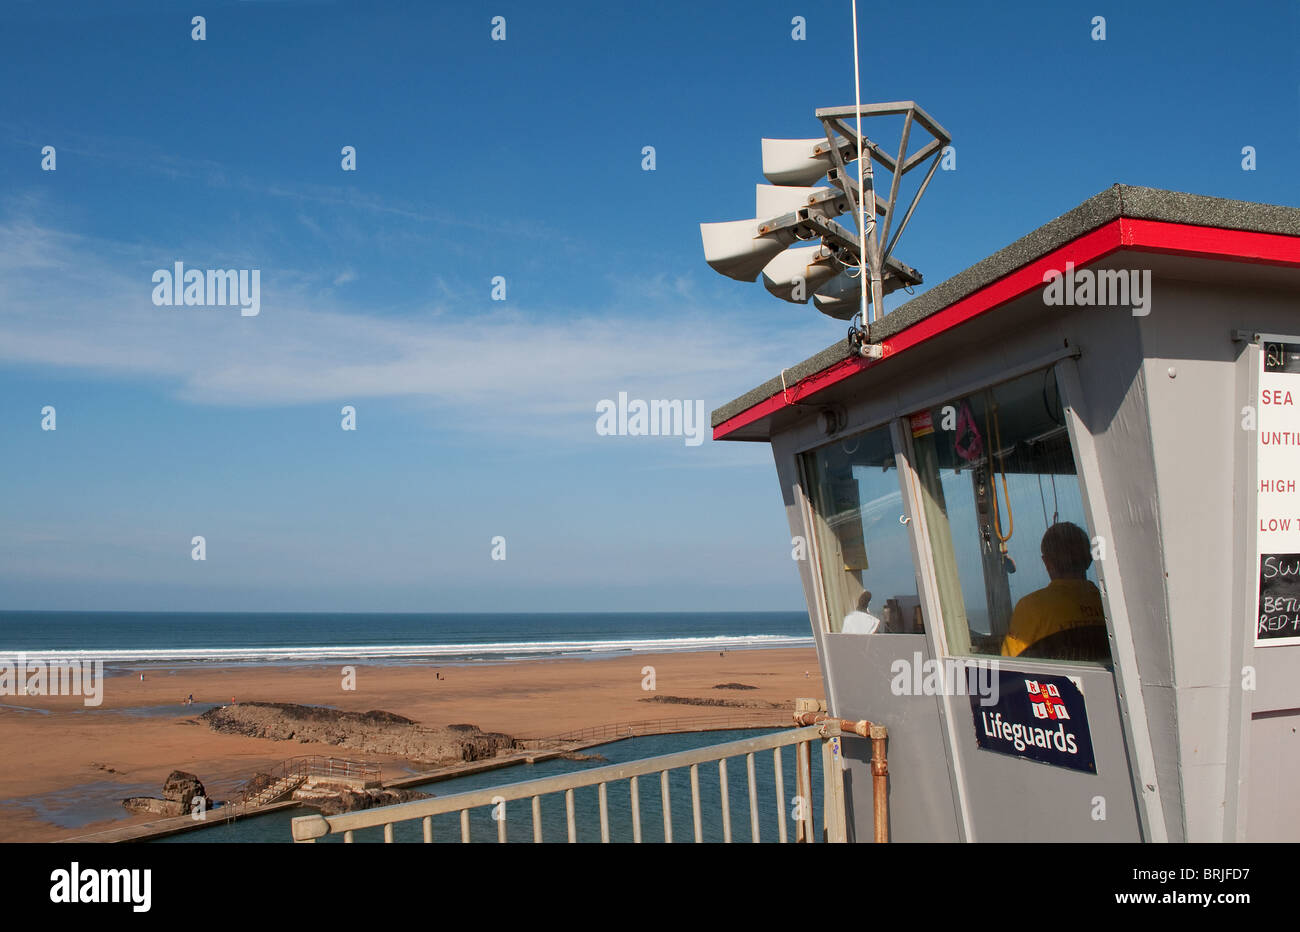 the lifeguards lookout station at summerleaze beach in bude, north cornwall, uk - Stock Image